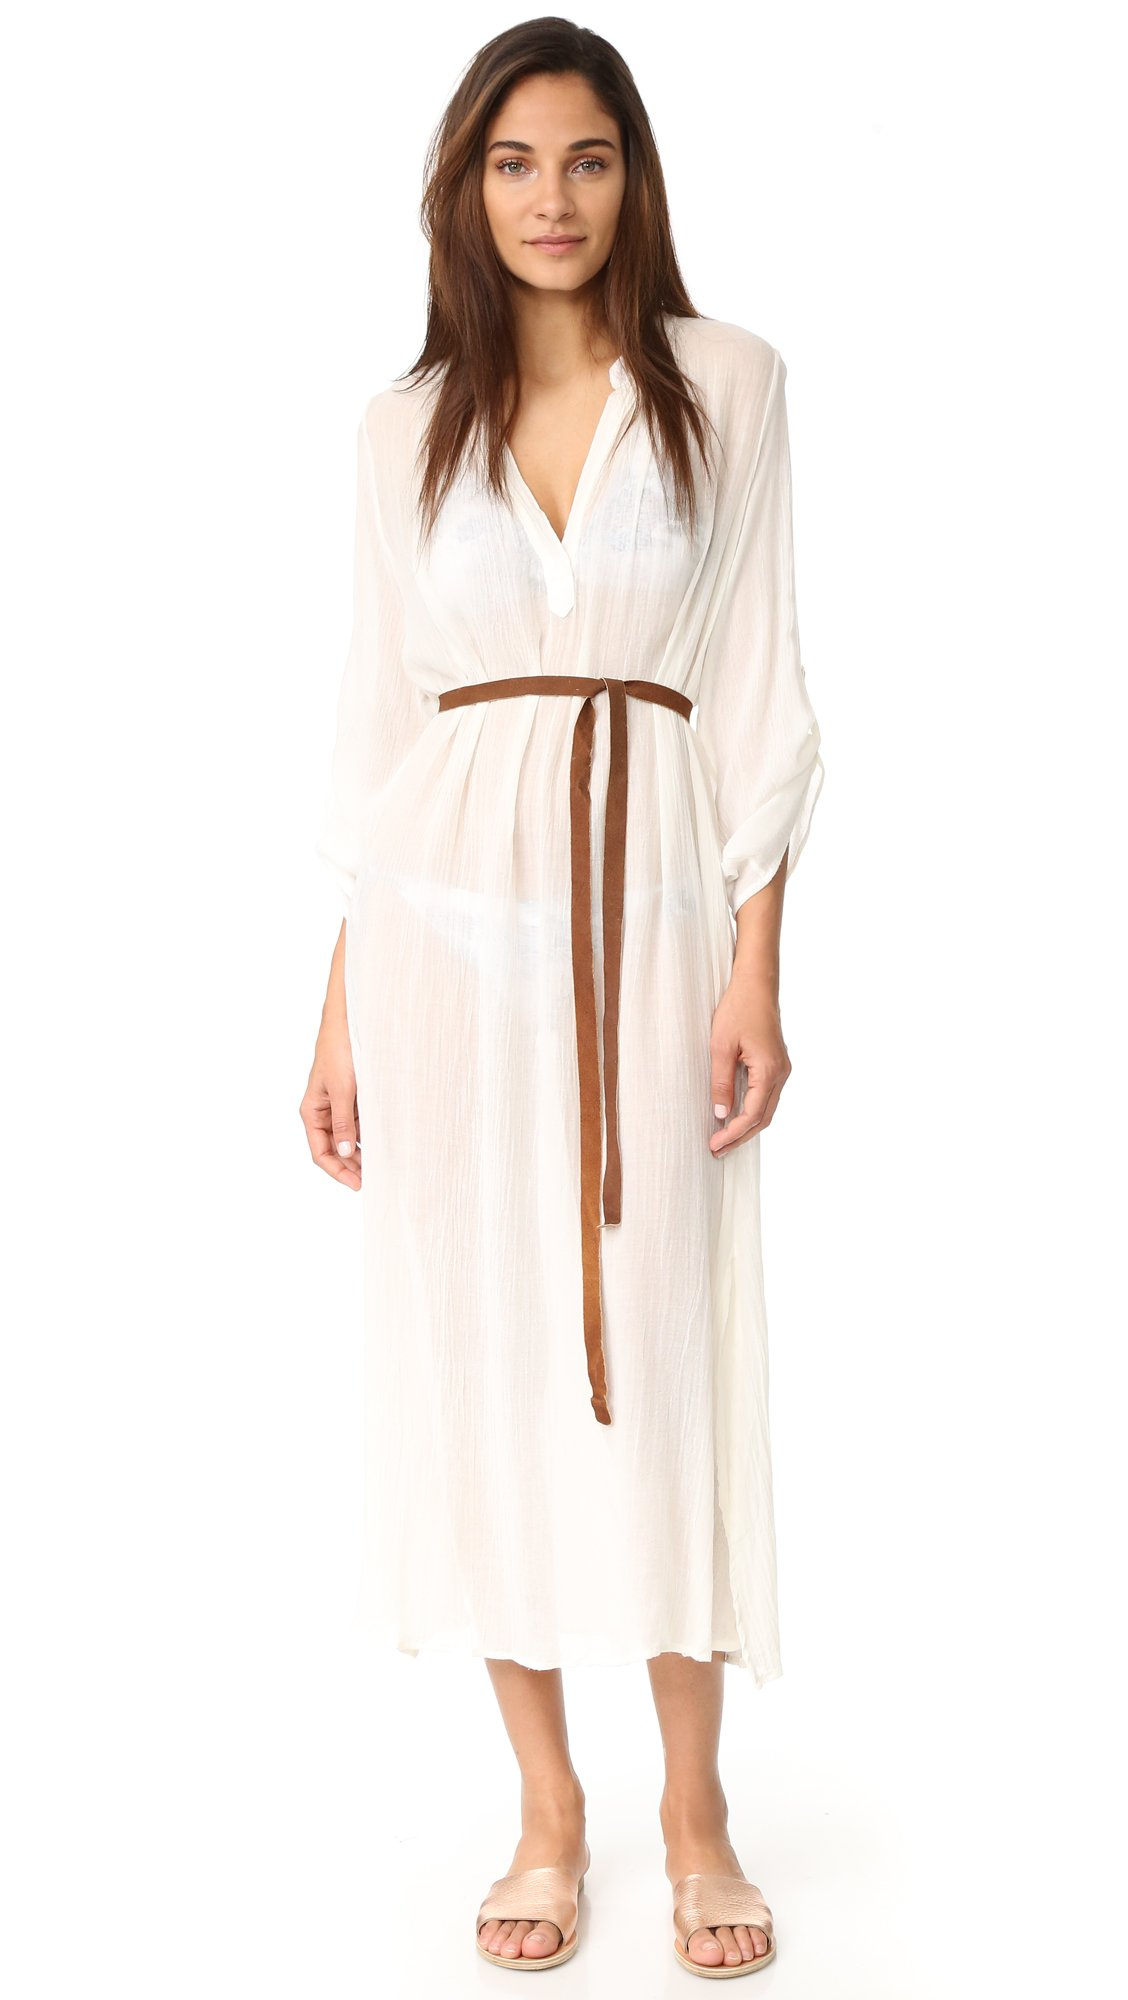 Eberjey Women's Summer Of Love Haven Cover Up Dress, Cloud, S/M by Eberjey (Image #4)